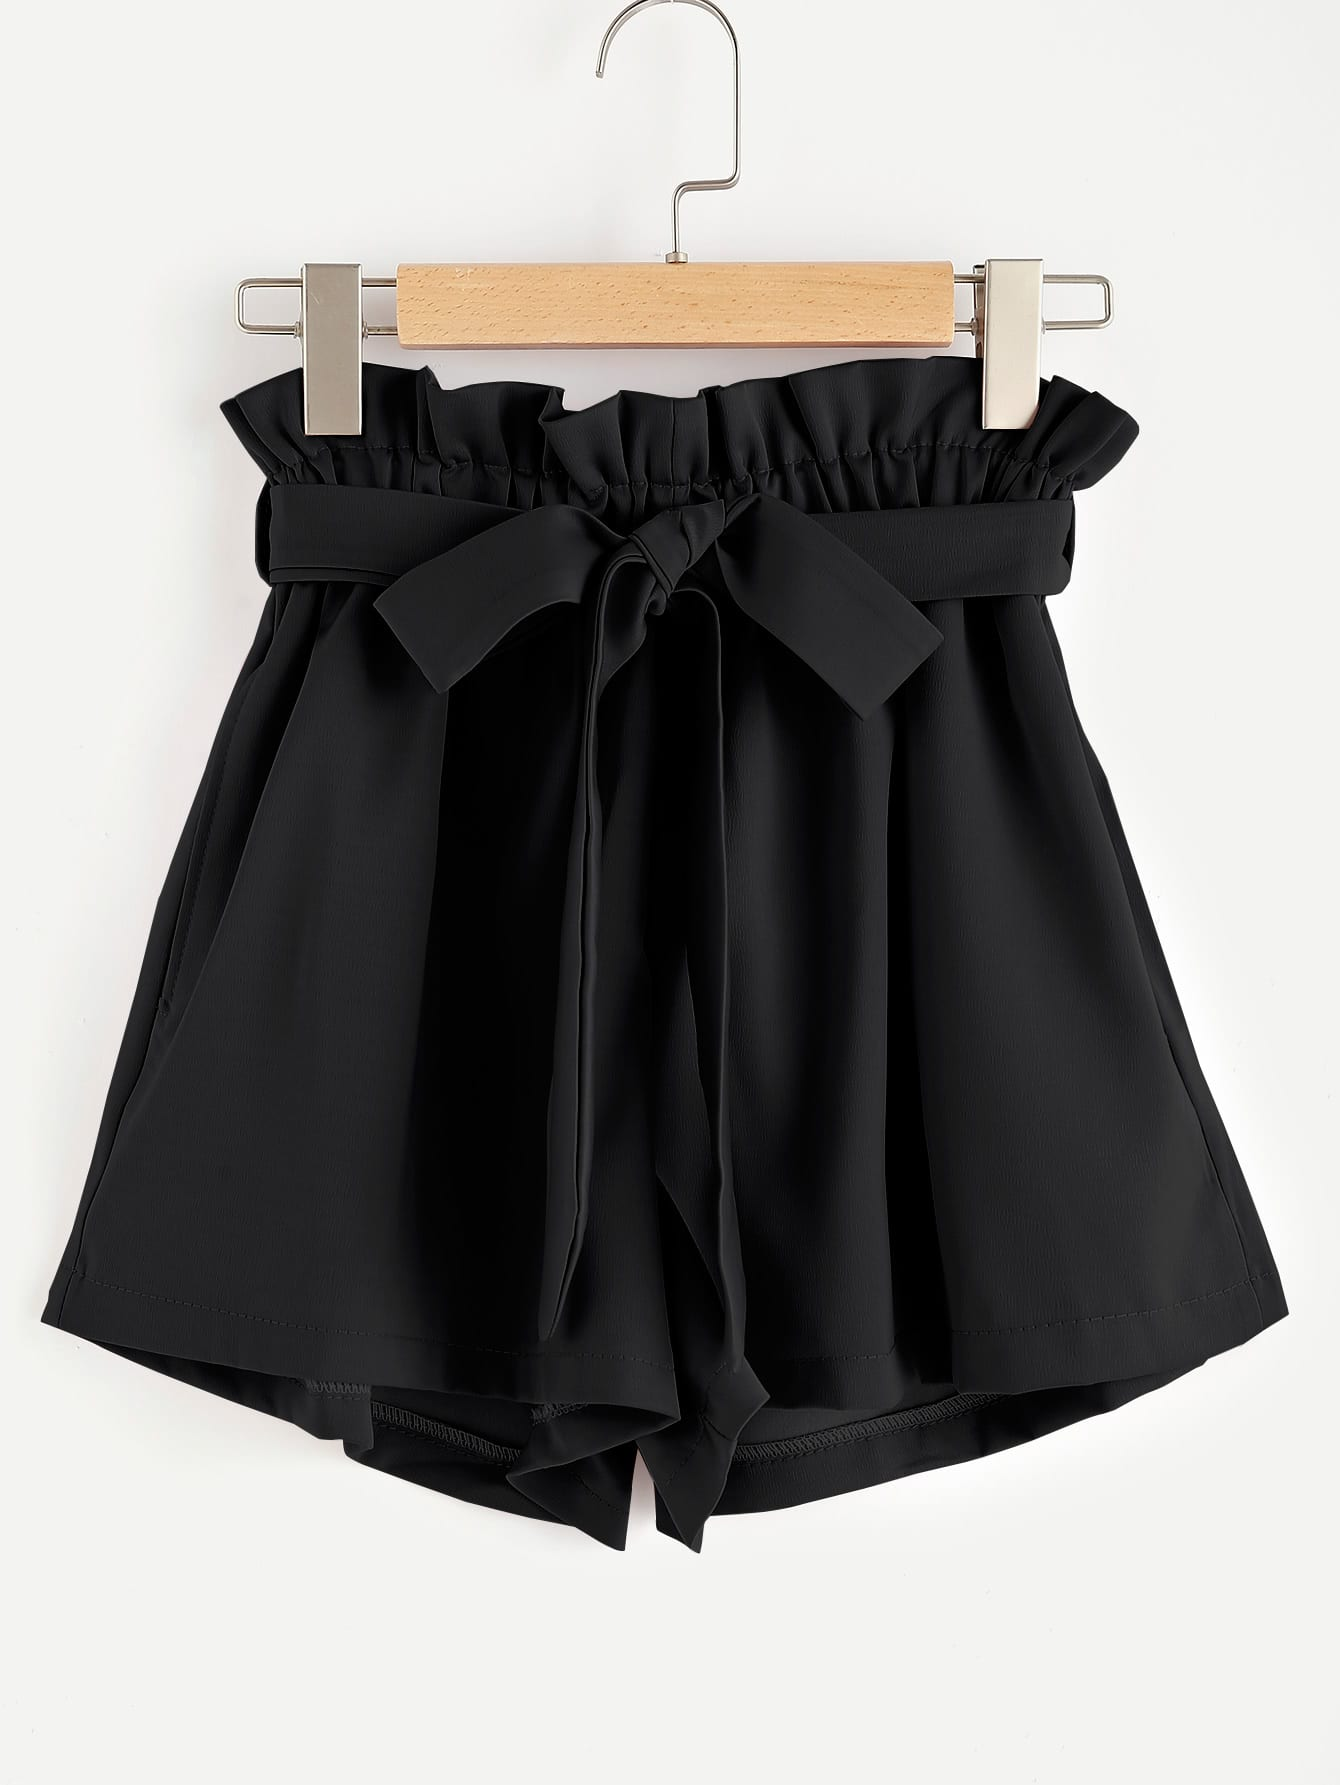 Frill Waist Self Tie Shorts allover florals bow tie detail frill top with shorts